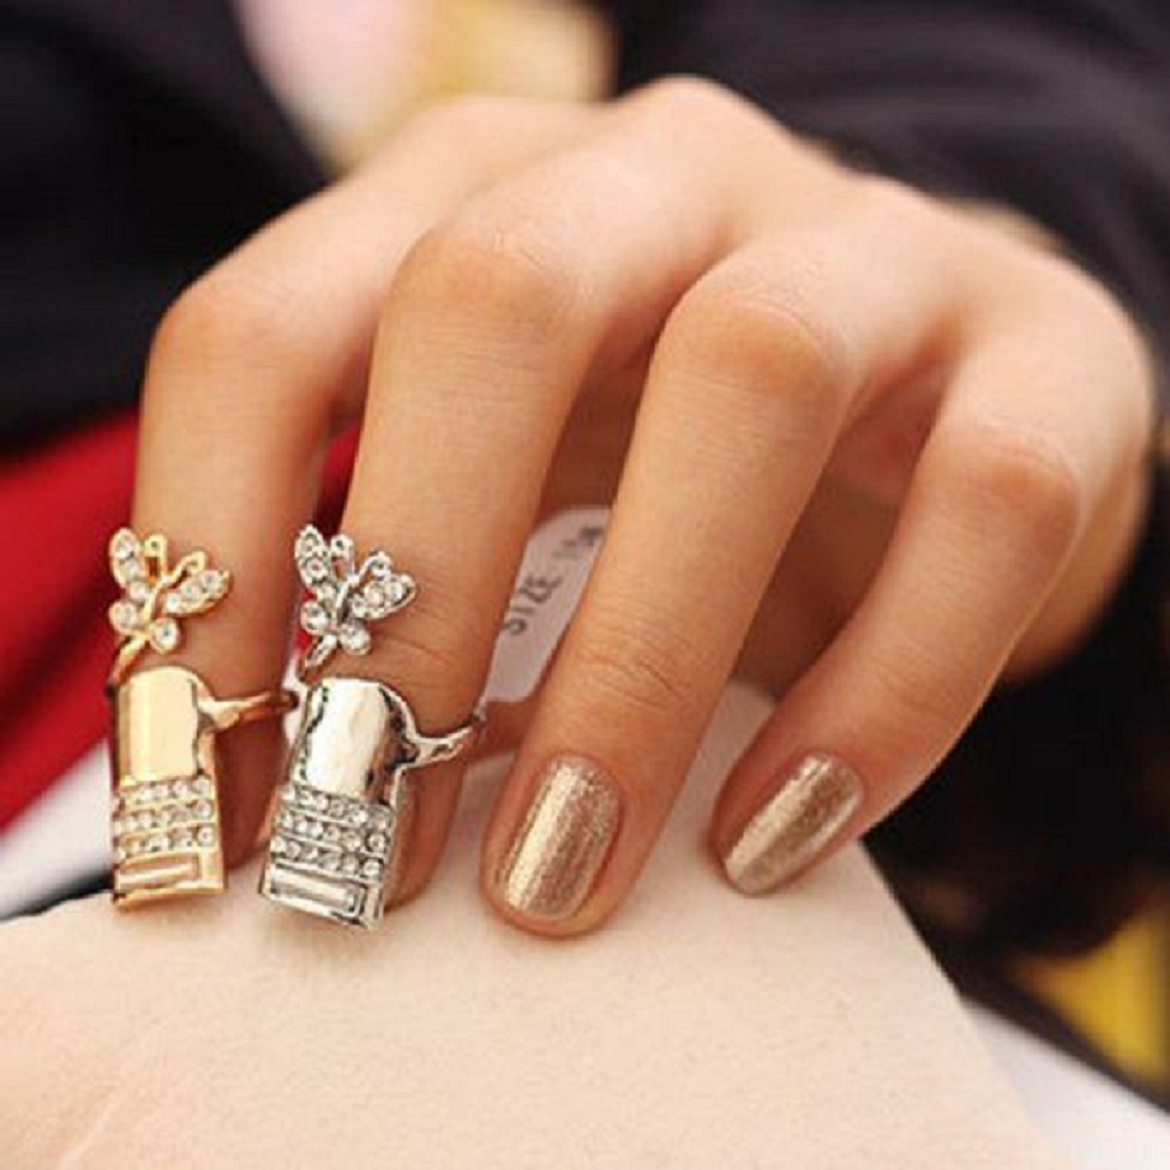 Nail ring bling Glittering Gold and Silver Nails Cover with Rhinestones